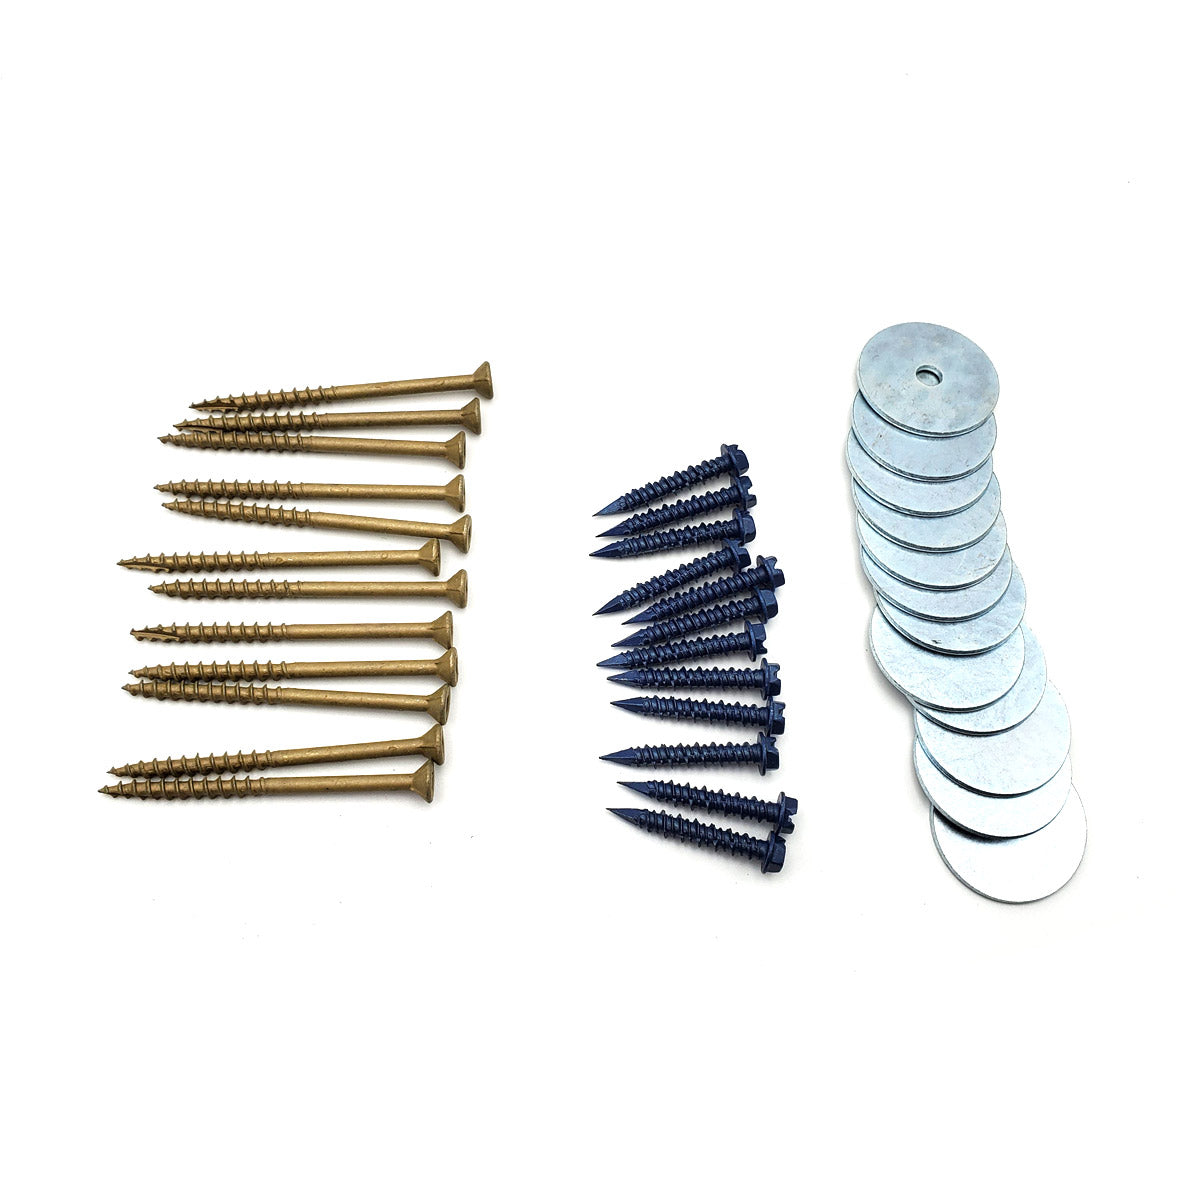 Component Mounting Hardware Kit